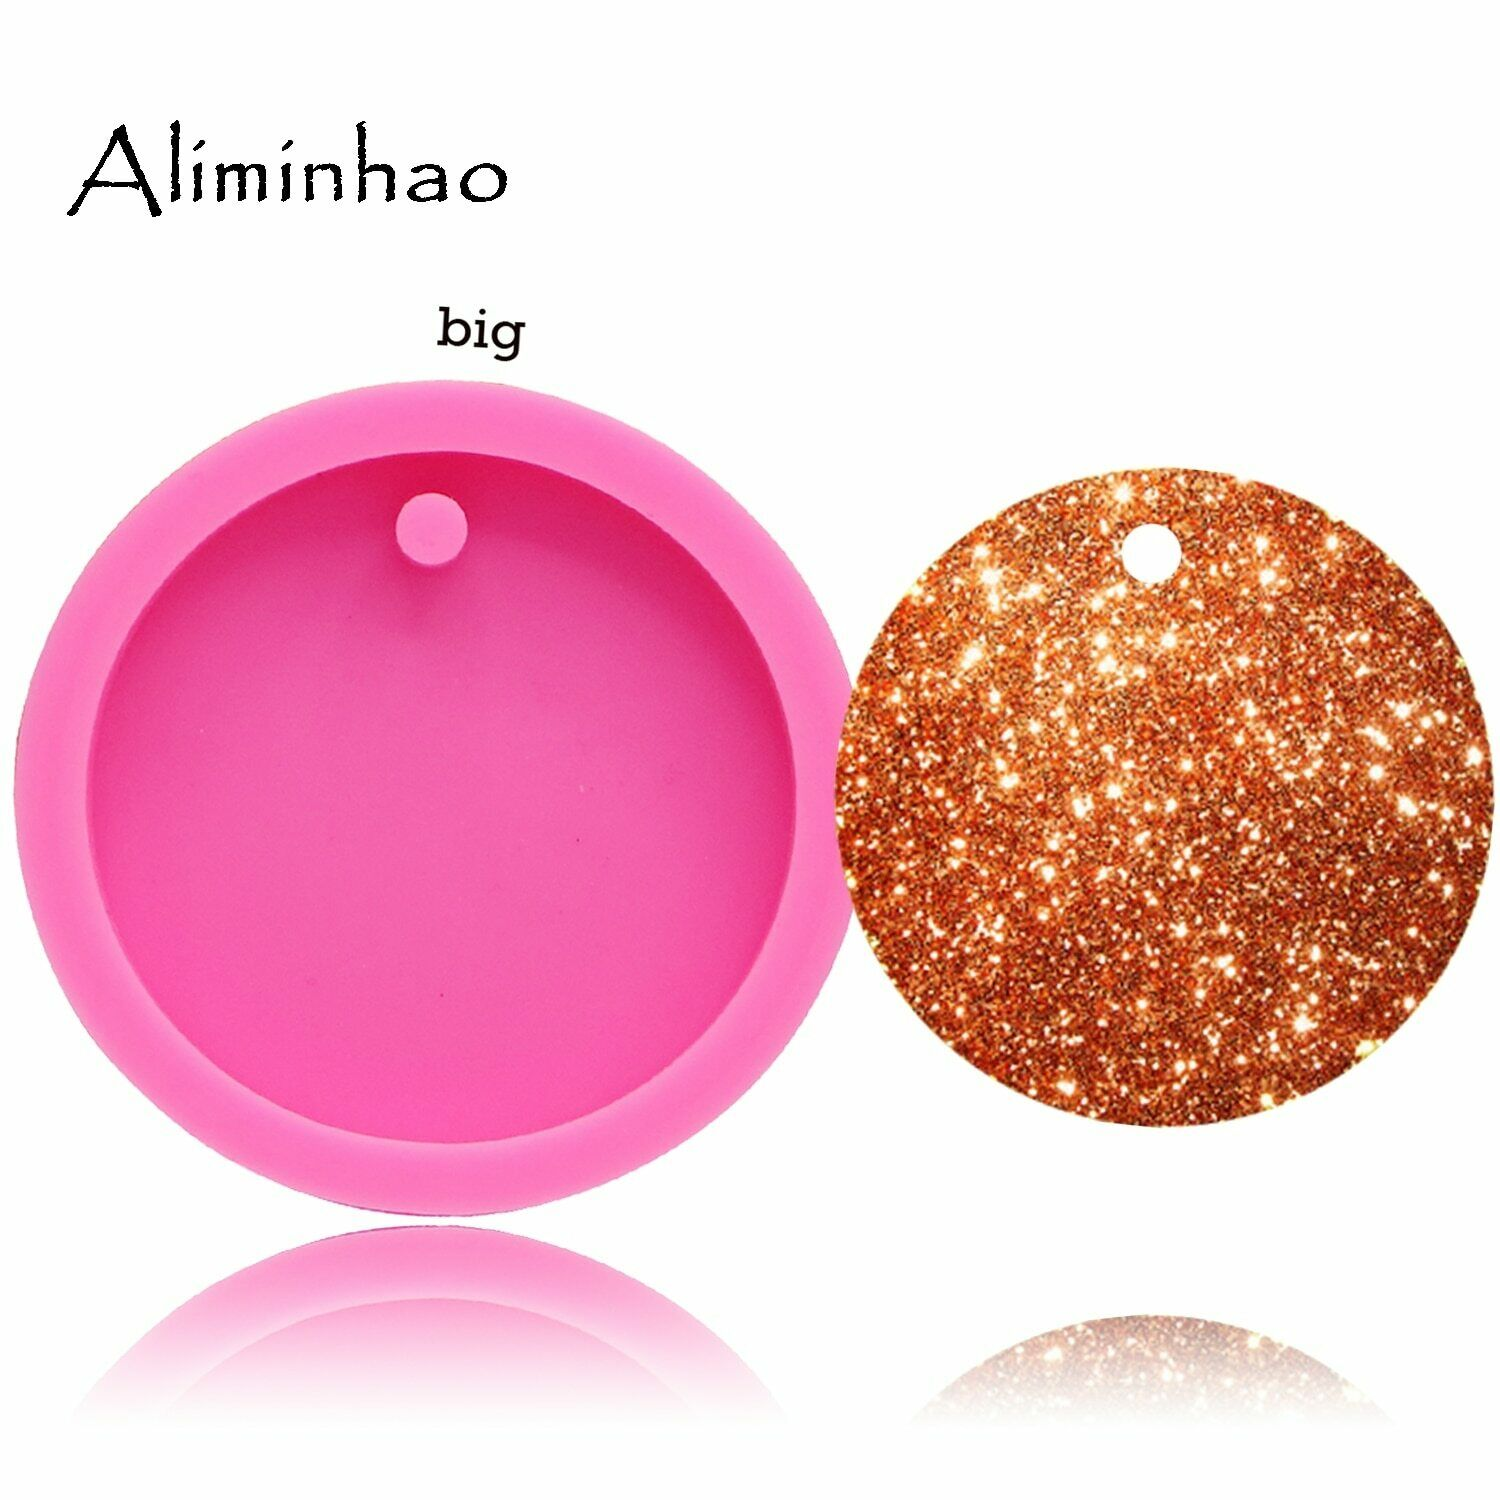 50mm/75mm Round Circle With Hole Disk Keychains silicone mol